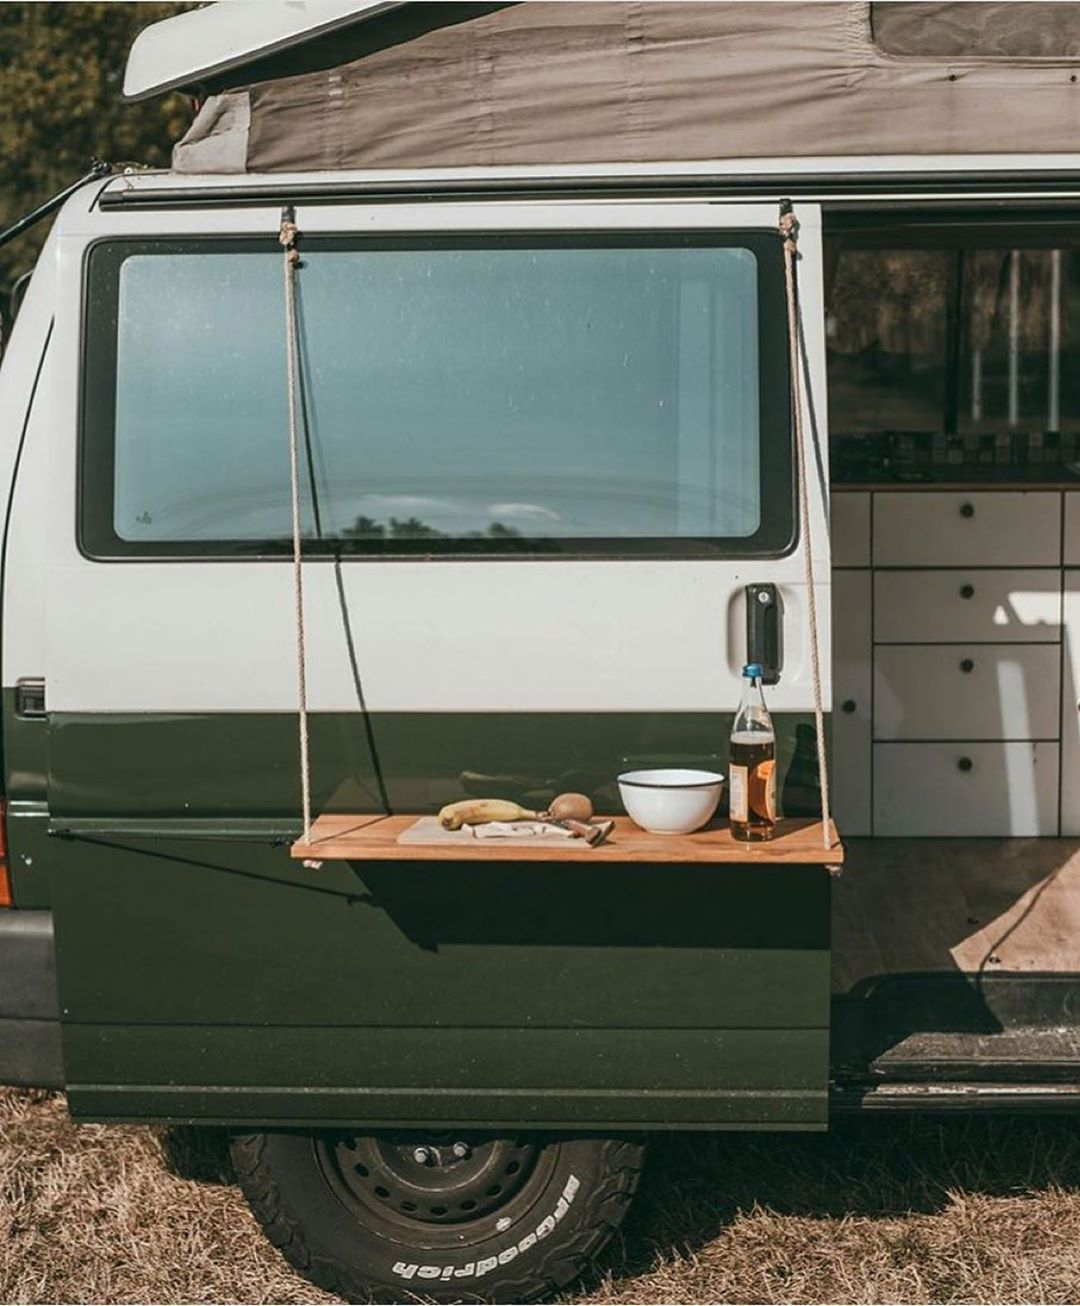 """Photo of Vanlife Inc. on Instagram: """"⠀ ⠀ ⠀ ⠀⠀ ⠀ ⠀⠀ ⠀ ⠀ ⠀ ⠀ [𝕍𝕒𝕟𝕝𝕚𝕗𝕖 𝕀𝕕𝕖𝕒𝕤 #3] ⠀ Minimalist outdoor table ☕️ ⠀ ⫸ 𝗙𝗼𝗹𝗹𝗼𝘄 𝘁𝗵𝗲 𝗺𝗼𝘃𝗲 @FromHouselifeToVanlife 𝗳𝗼𝗿 𝗺𝗼𝗿𝗲! ⠀ 📸 :…"""""""